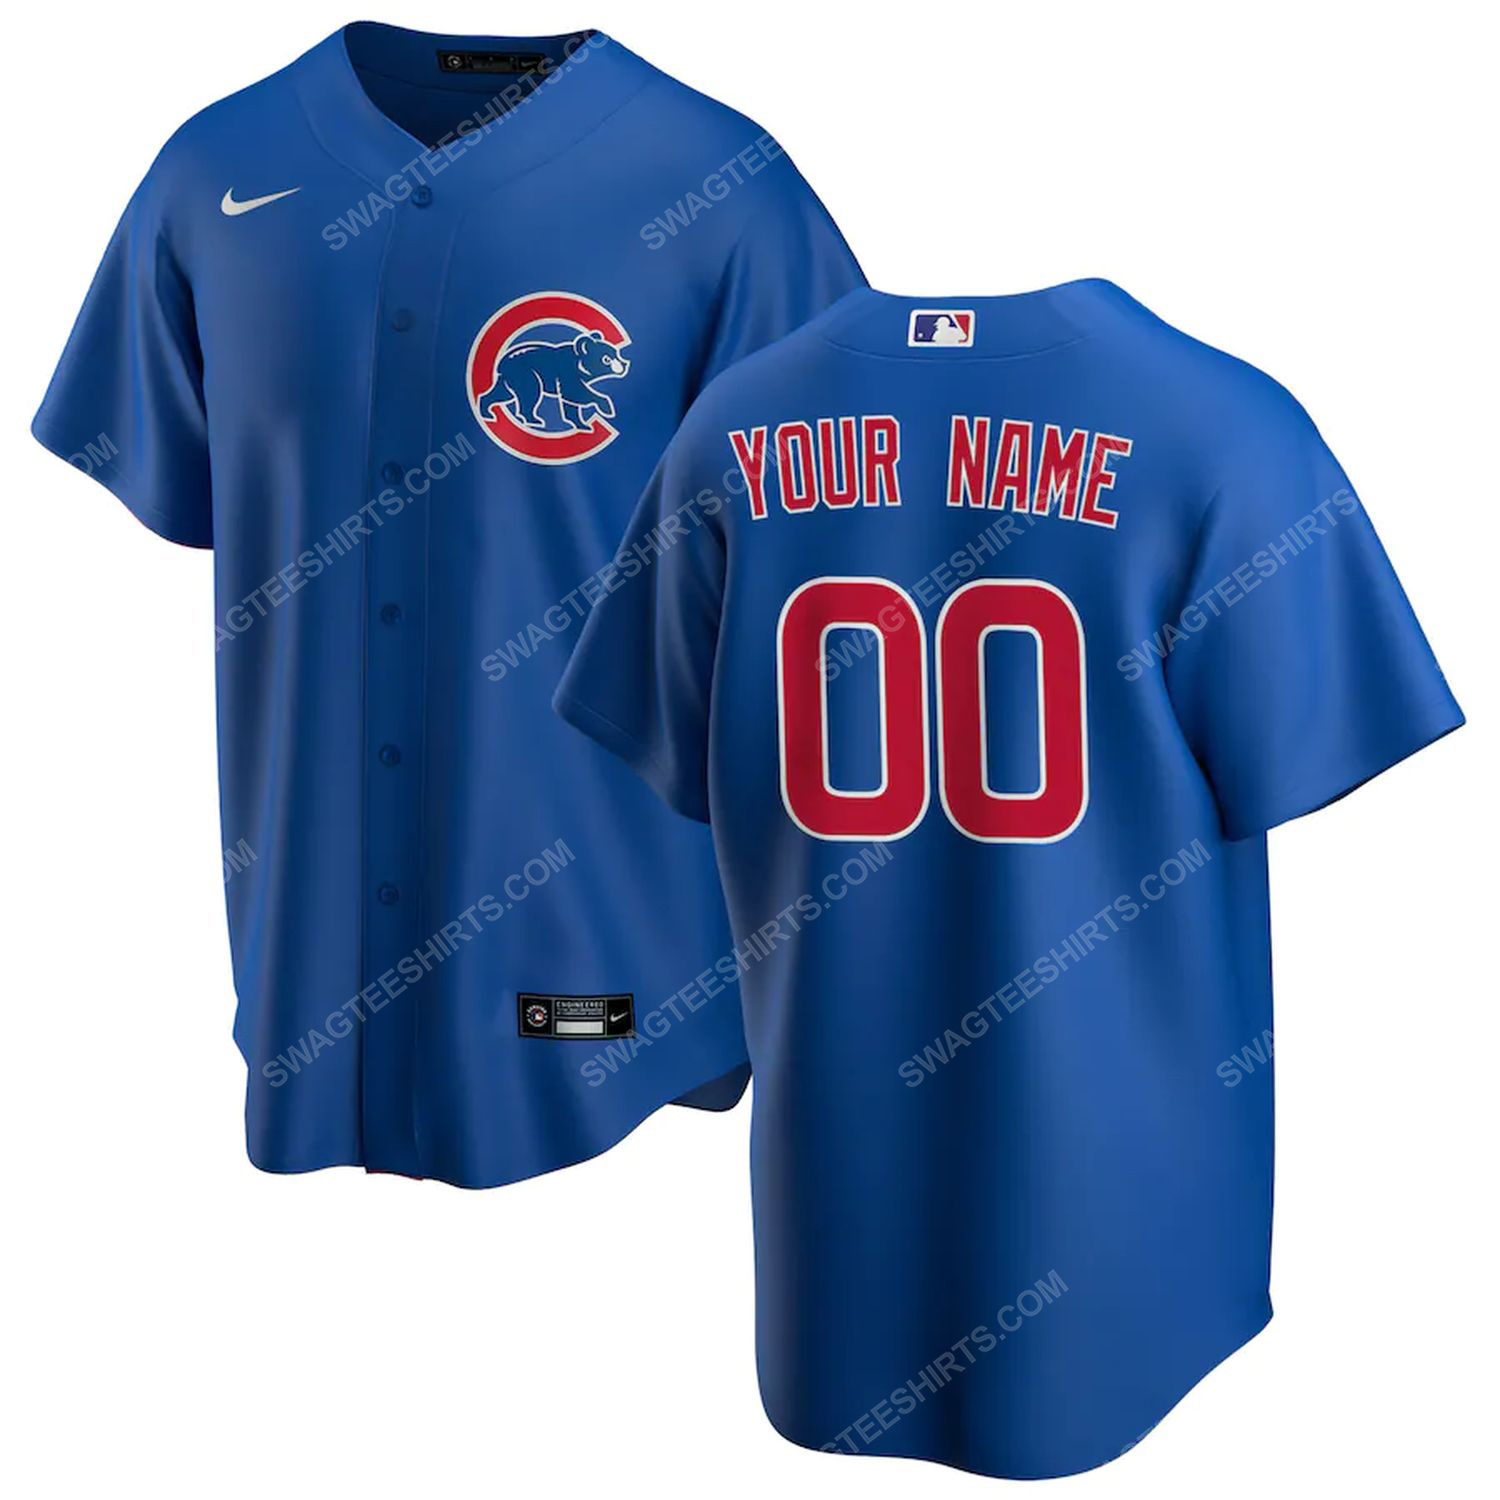 Personalized mlb chicago cubs baseball jersey-royal - Copy